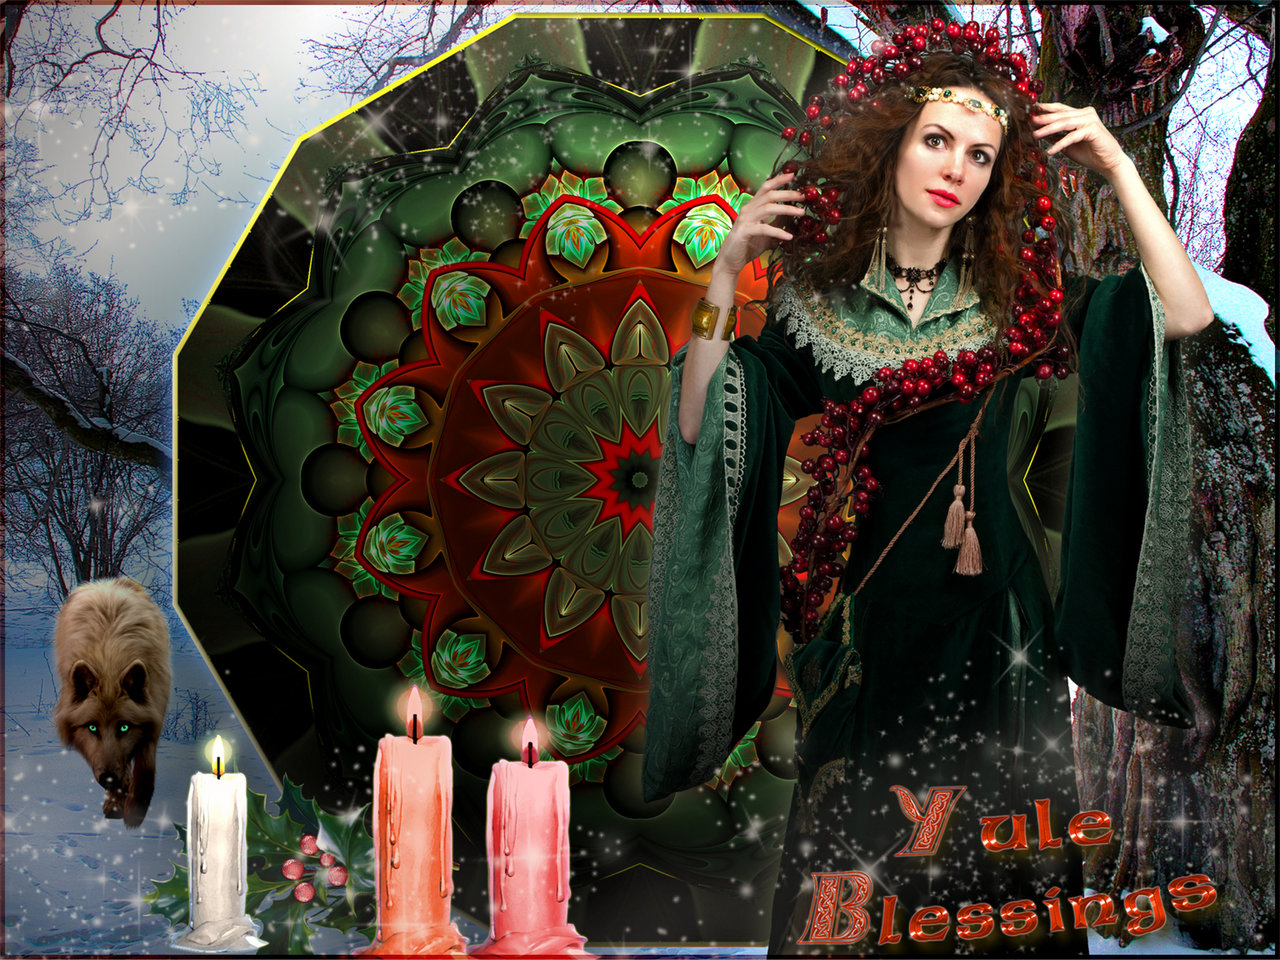 yule_blessings__by_scrano-d9i6yvi